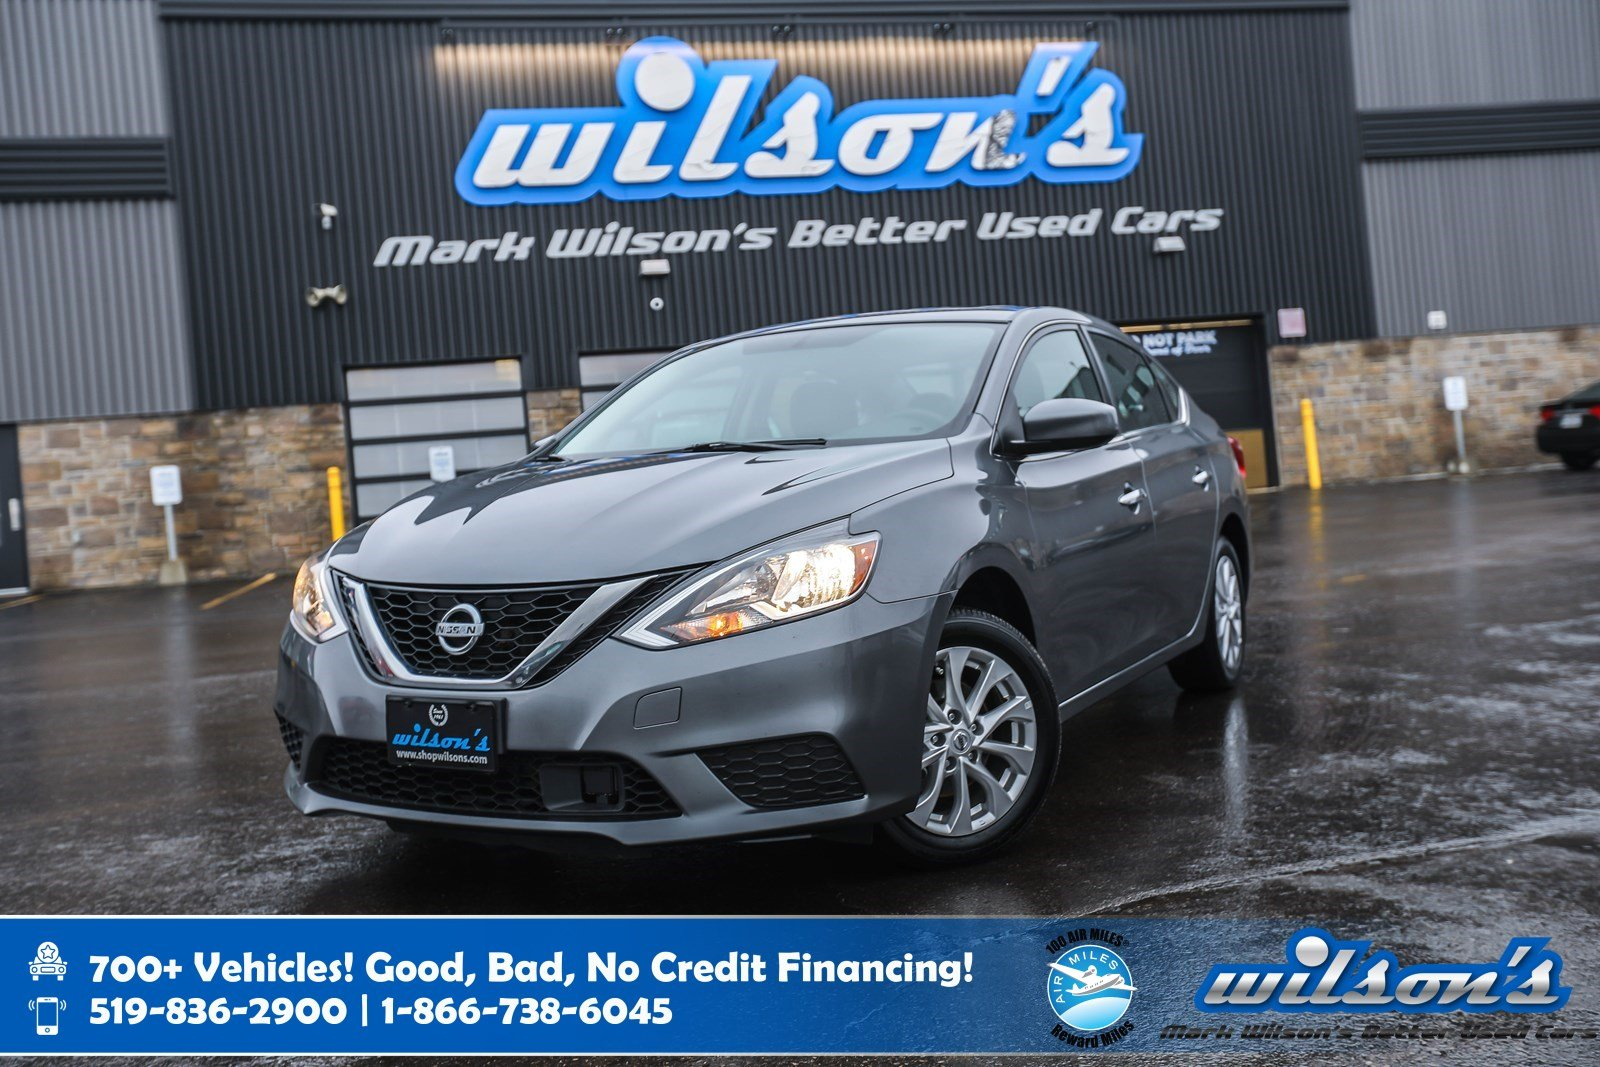 Certified Pre-Owned 2019 Nissan Sentra SV, Sunroof, Heated Seats, Android Auto + Apple CarPlay, Bluetooth, Rear Camera and more!